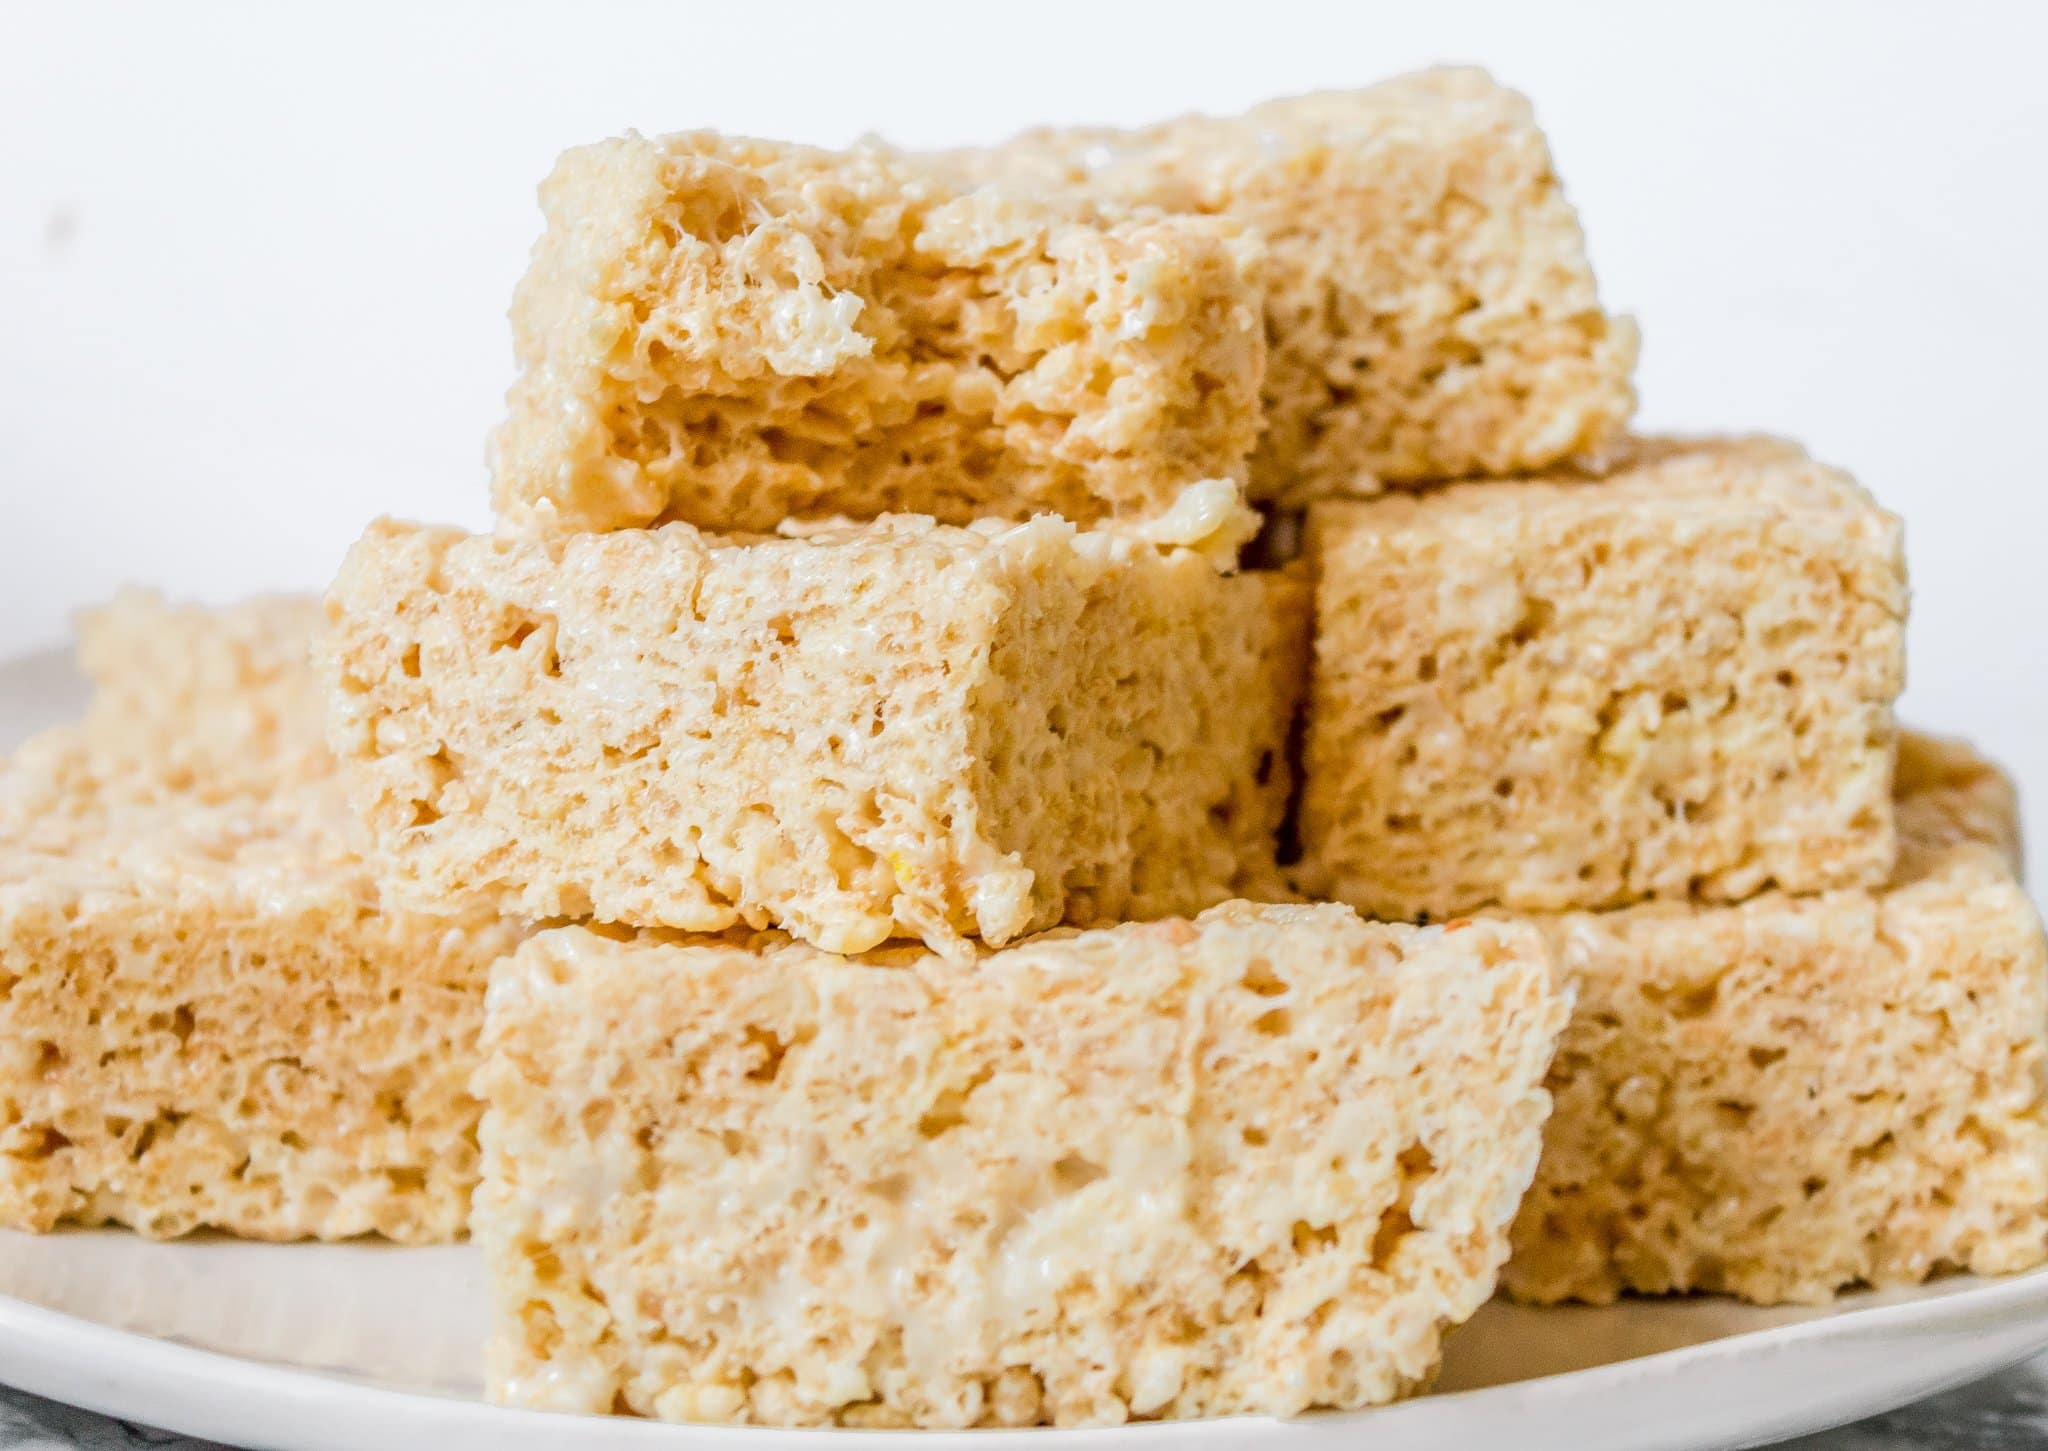 Fancy Rice Krispie Treats with Brown Butter and White Chocolate Ganache